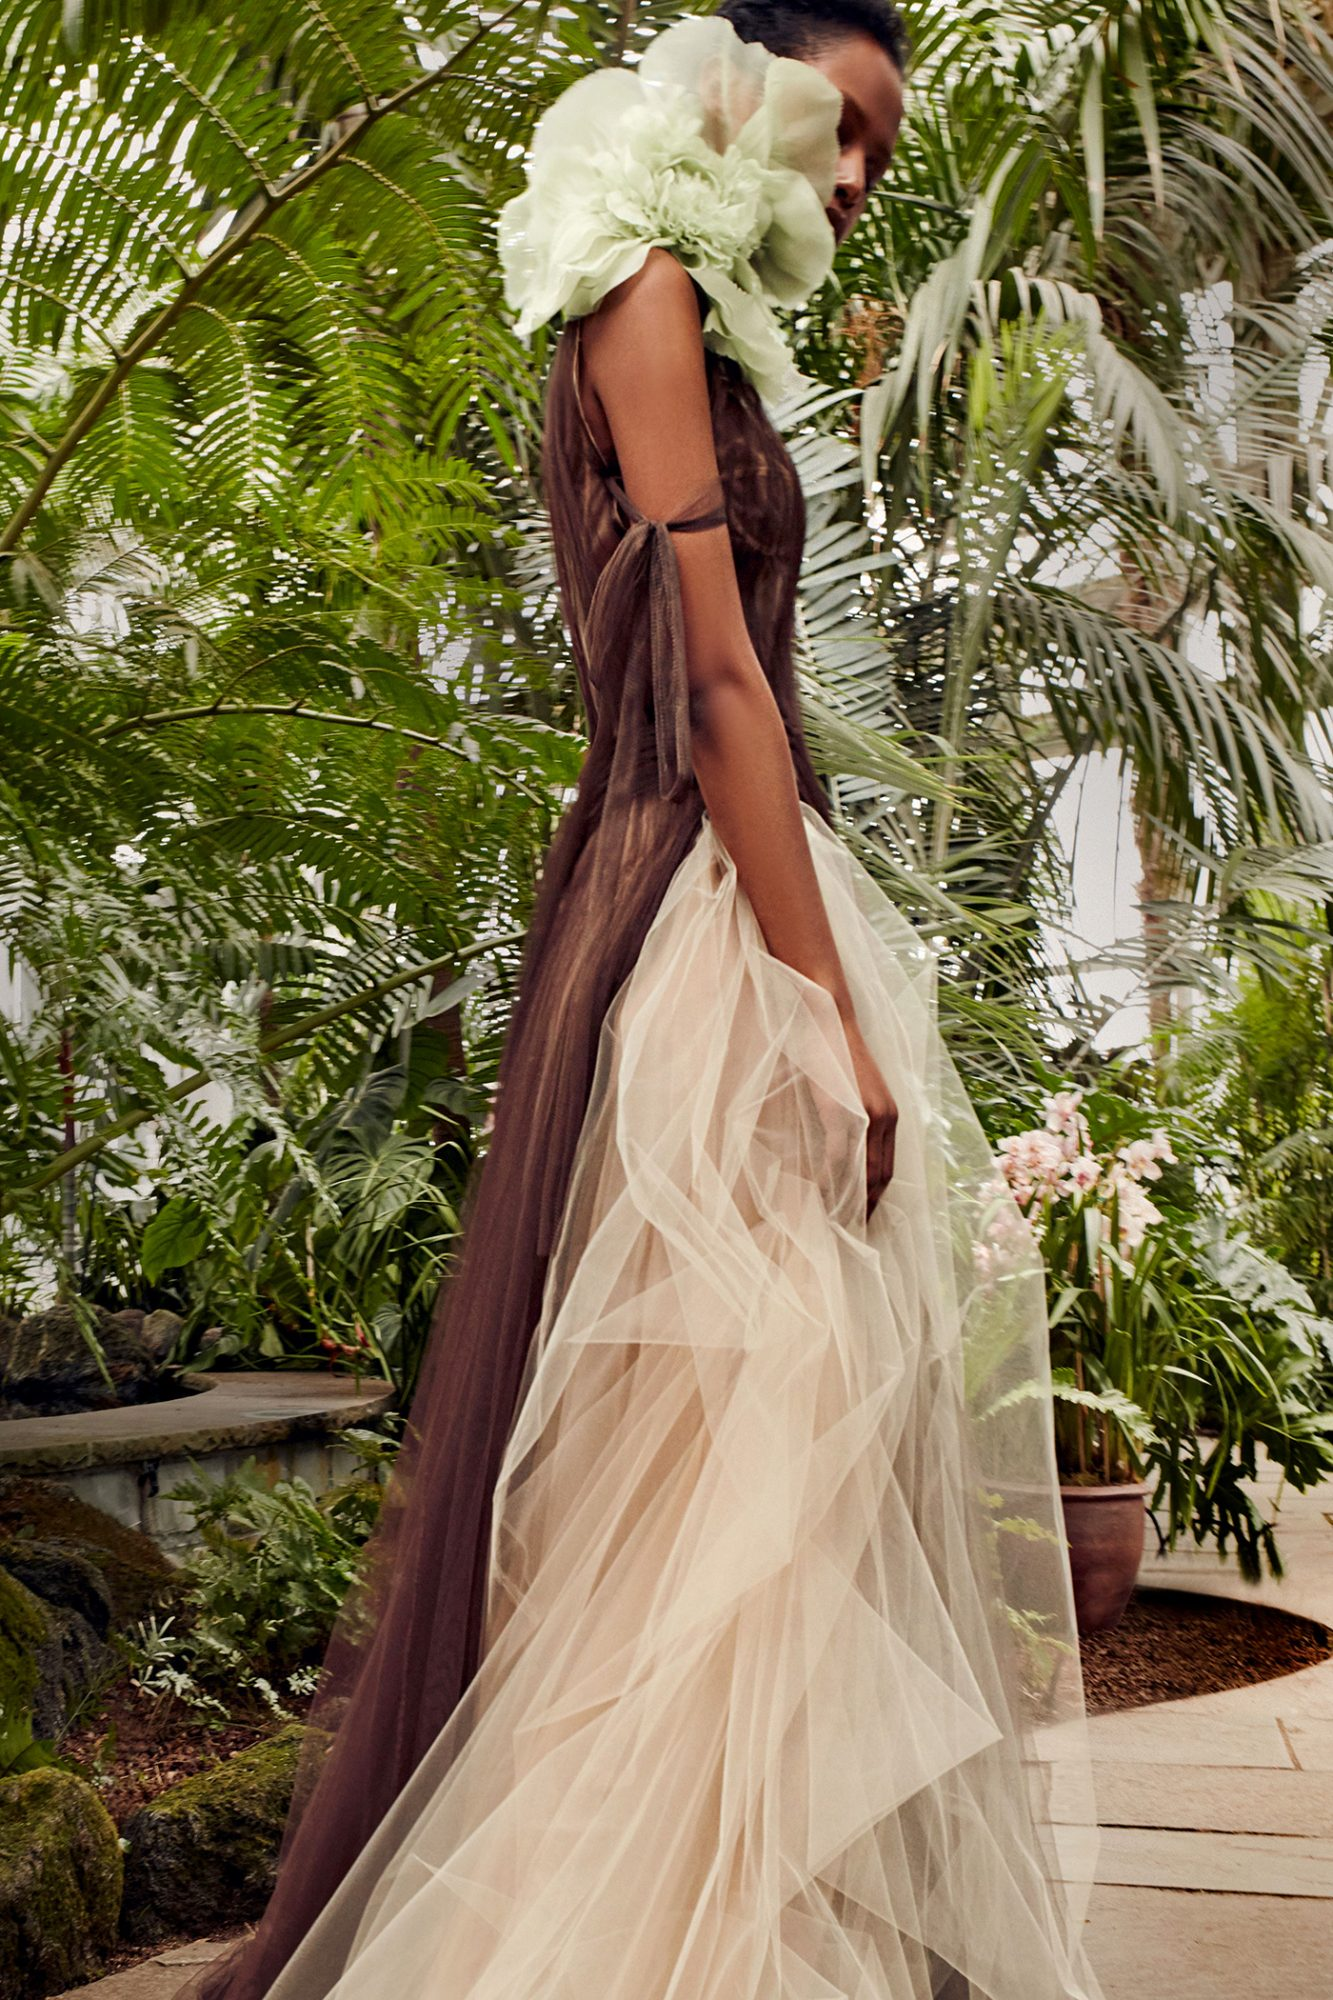 vera wang chocolate champagne wedding dress spring 2020